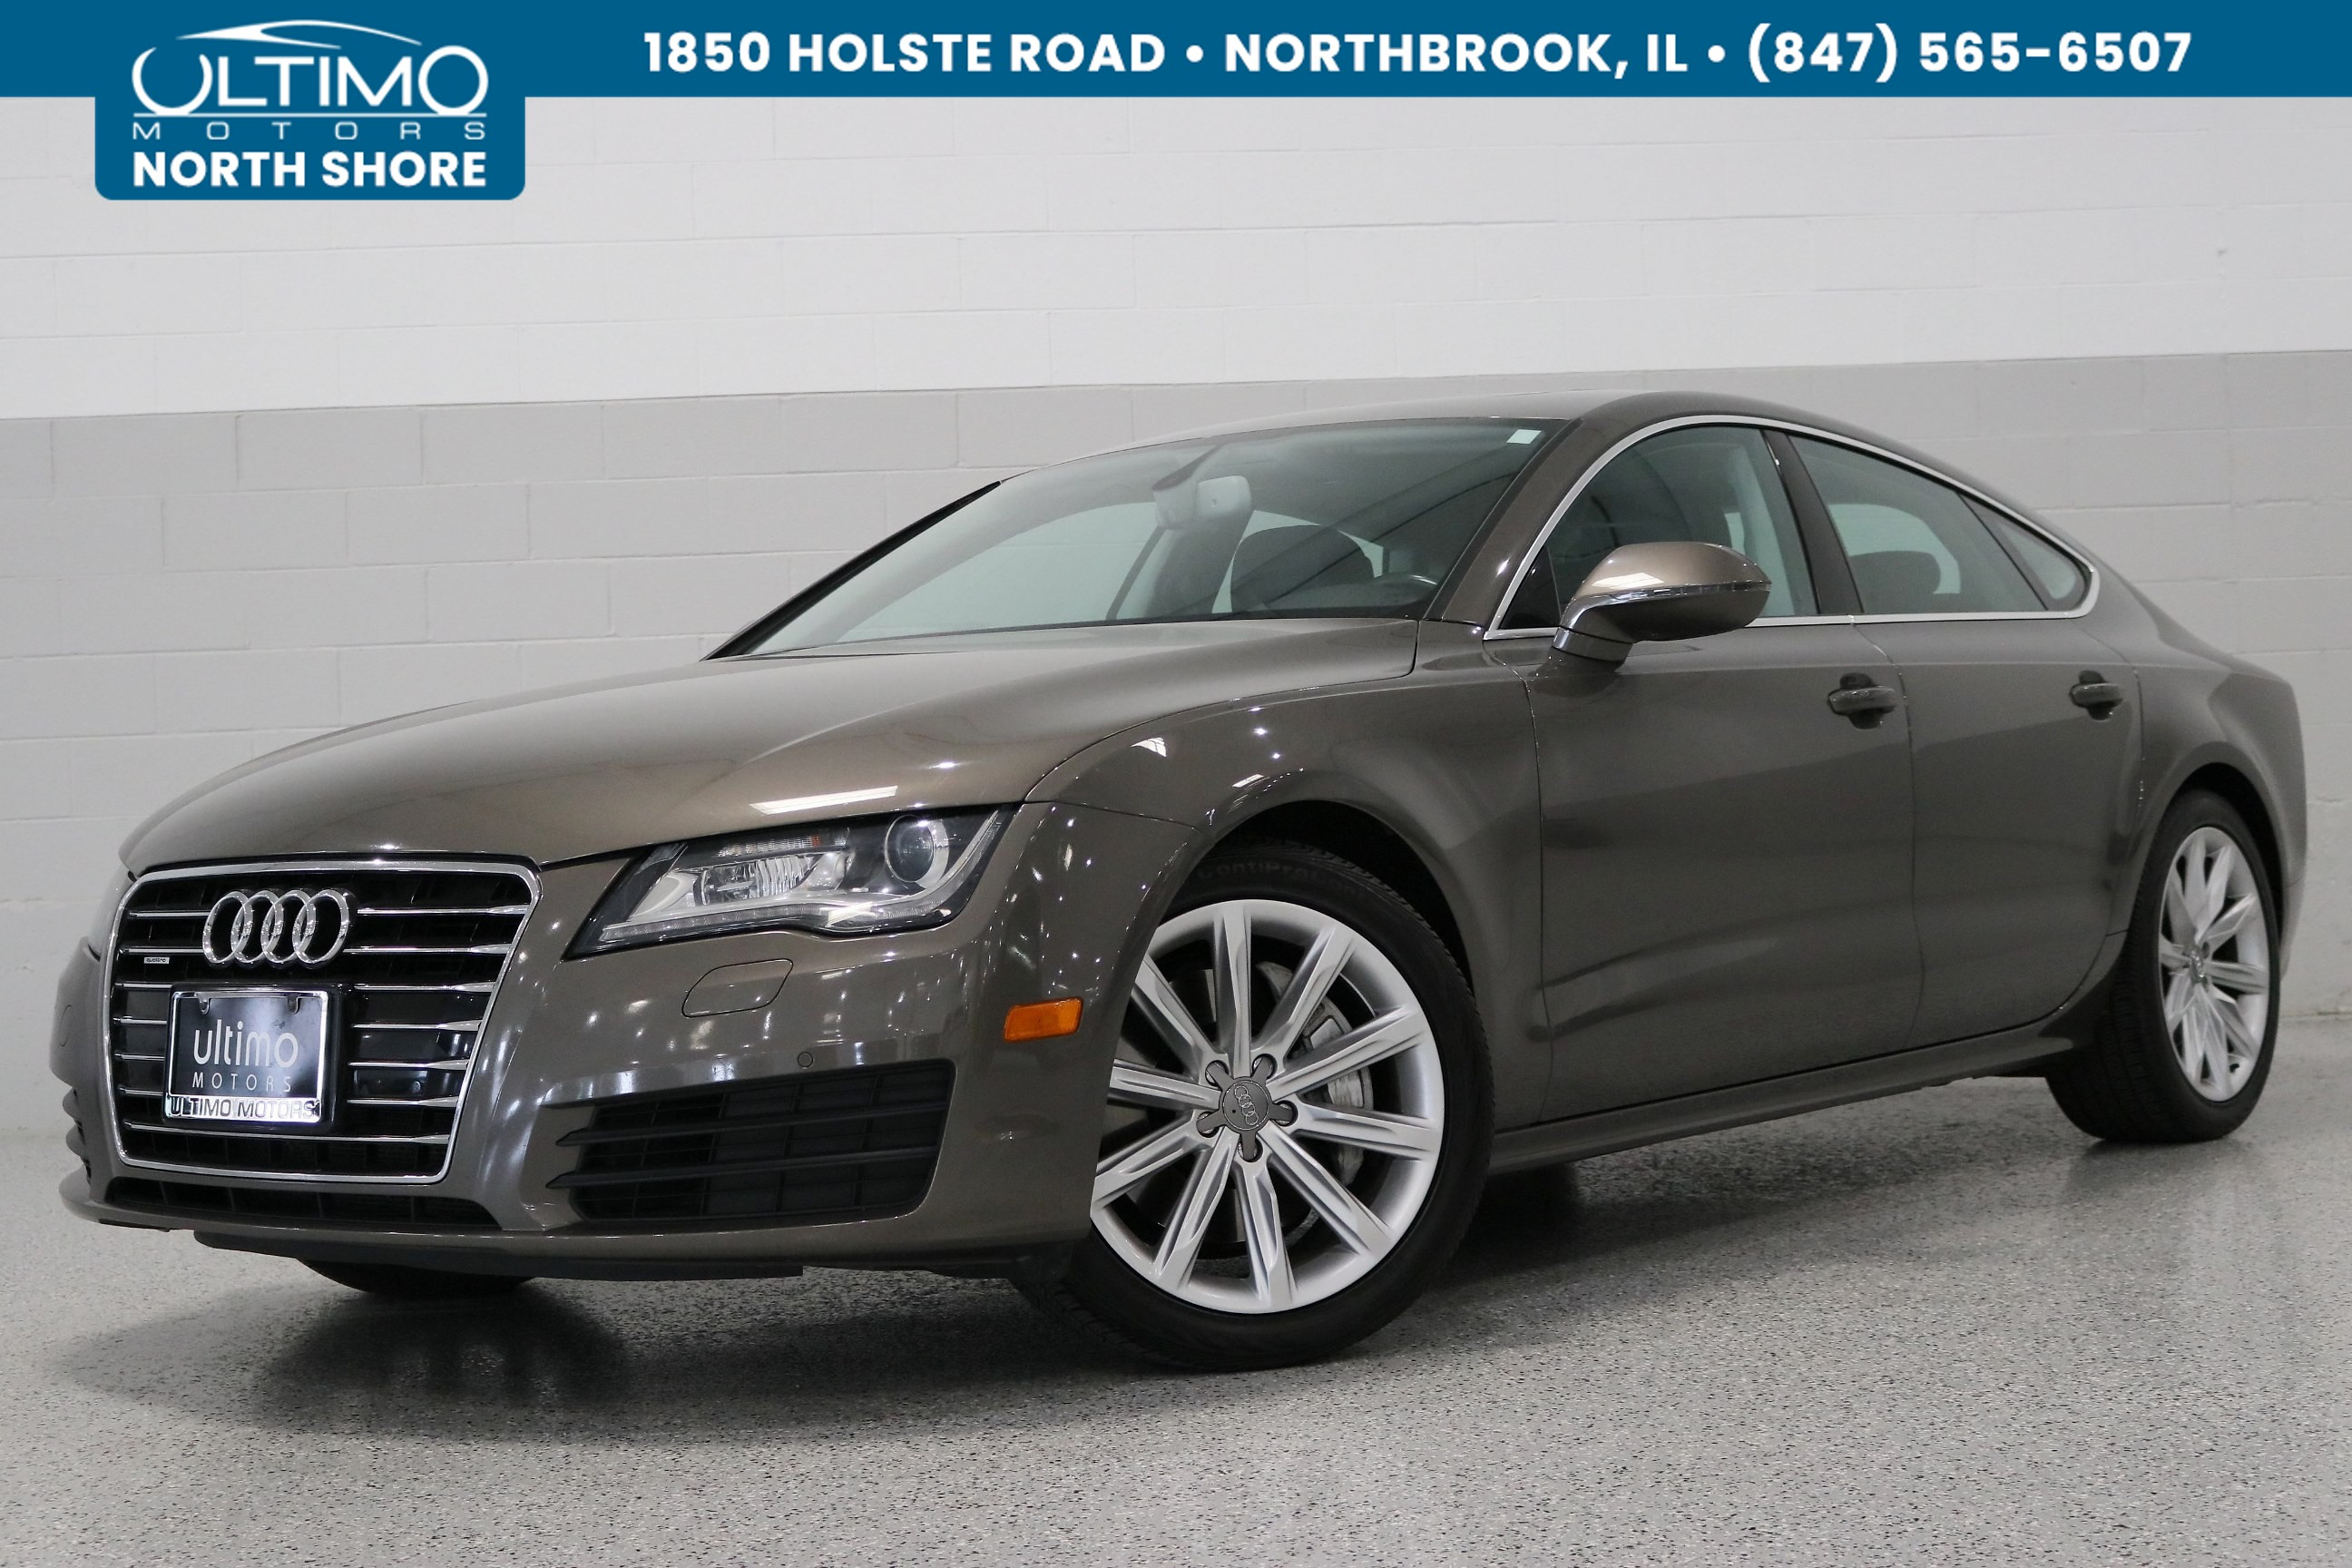 Pre-Owned 2012 Audi A7 3.0 Premium Plus, Side Assist, Launch Vehicle